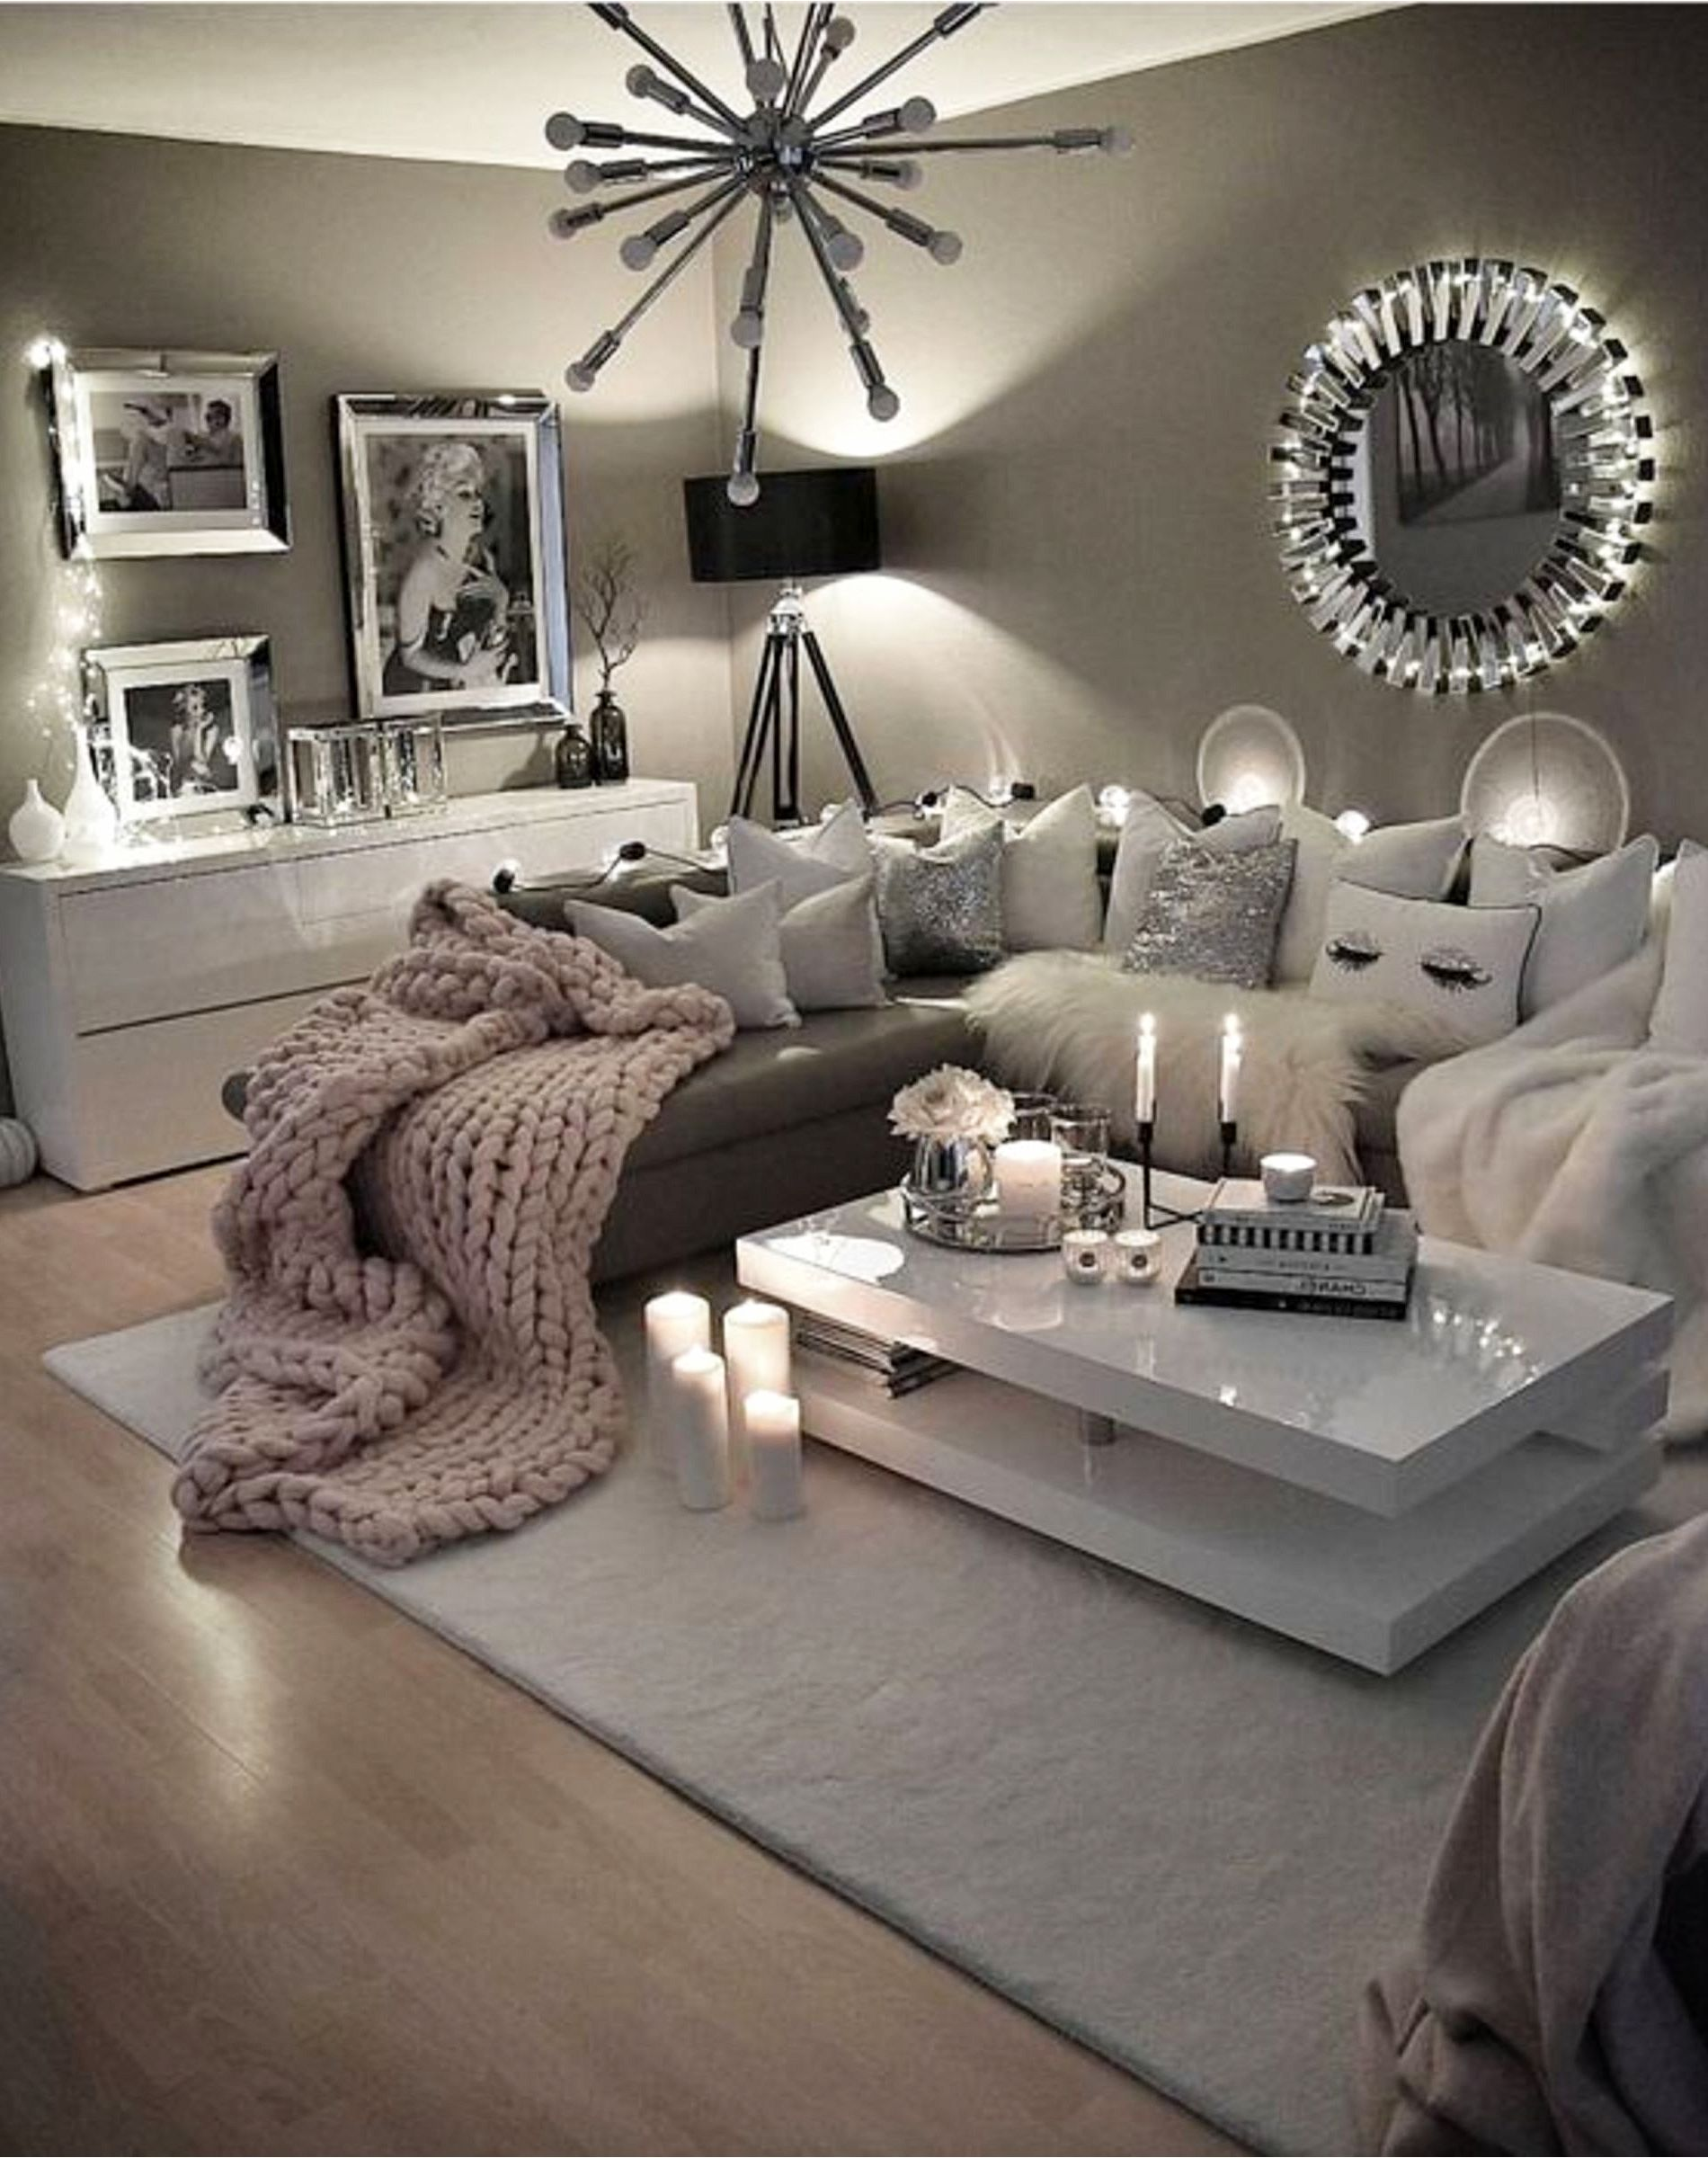 Cozy small living room decor ideas for your apartment decorating pinterest and chic also rh